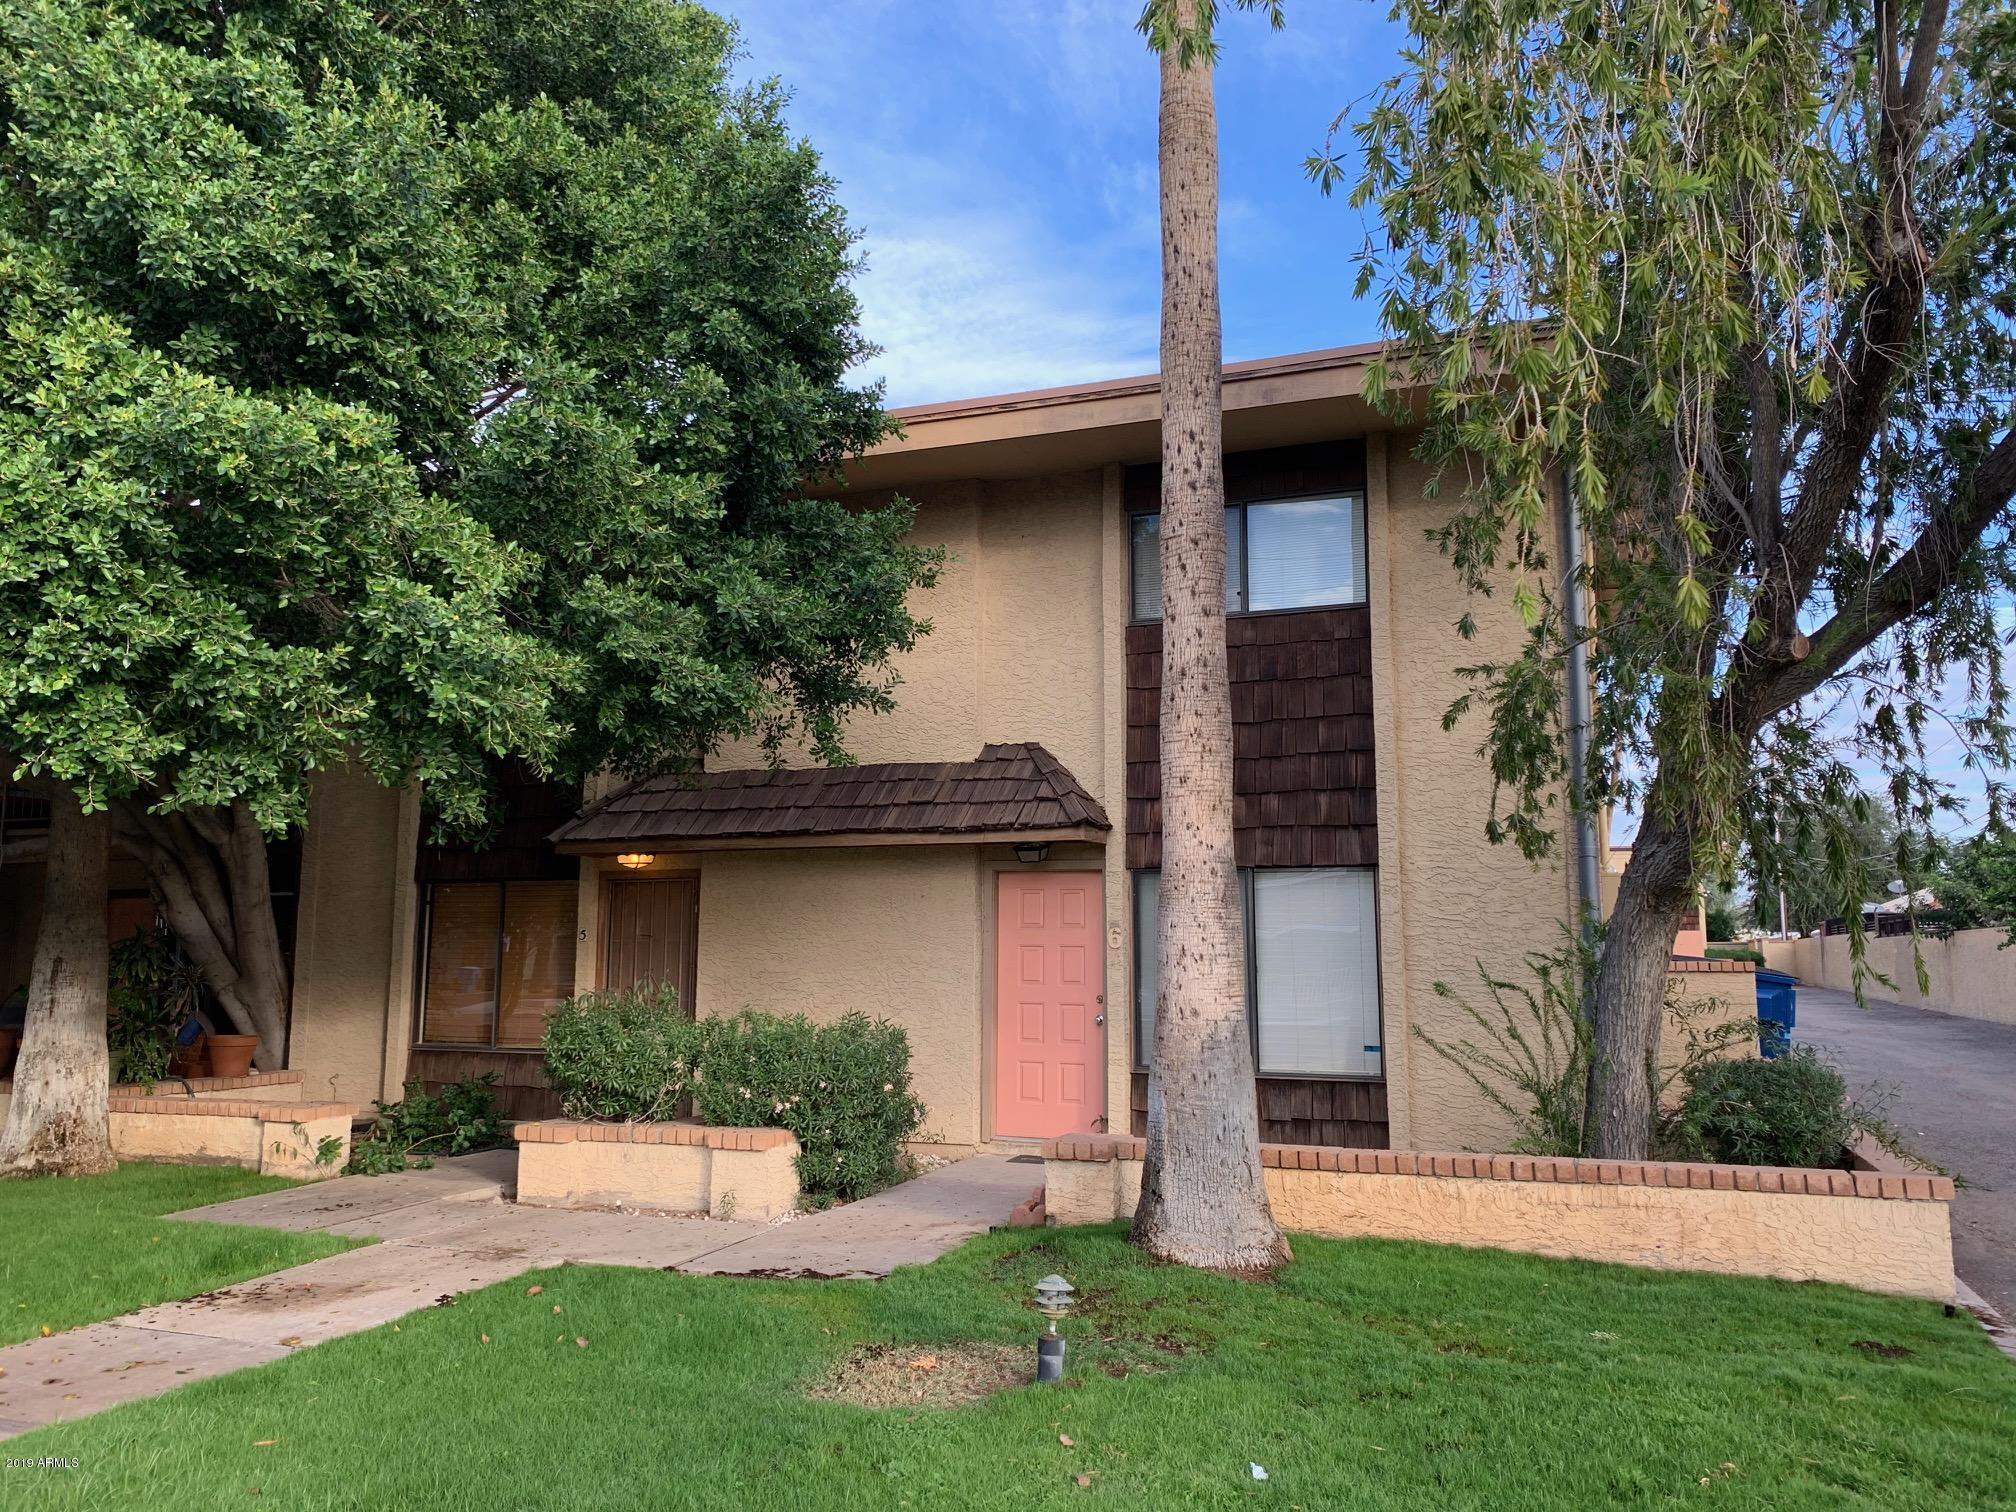 Photo of 1302 E MARYLAND Avenue #6, Phoenix, AZ 85014